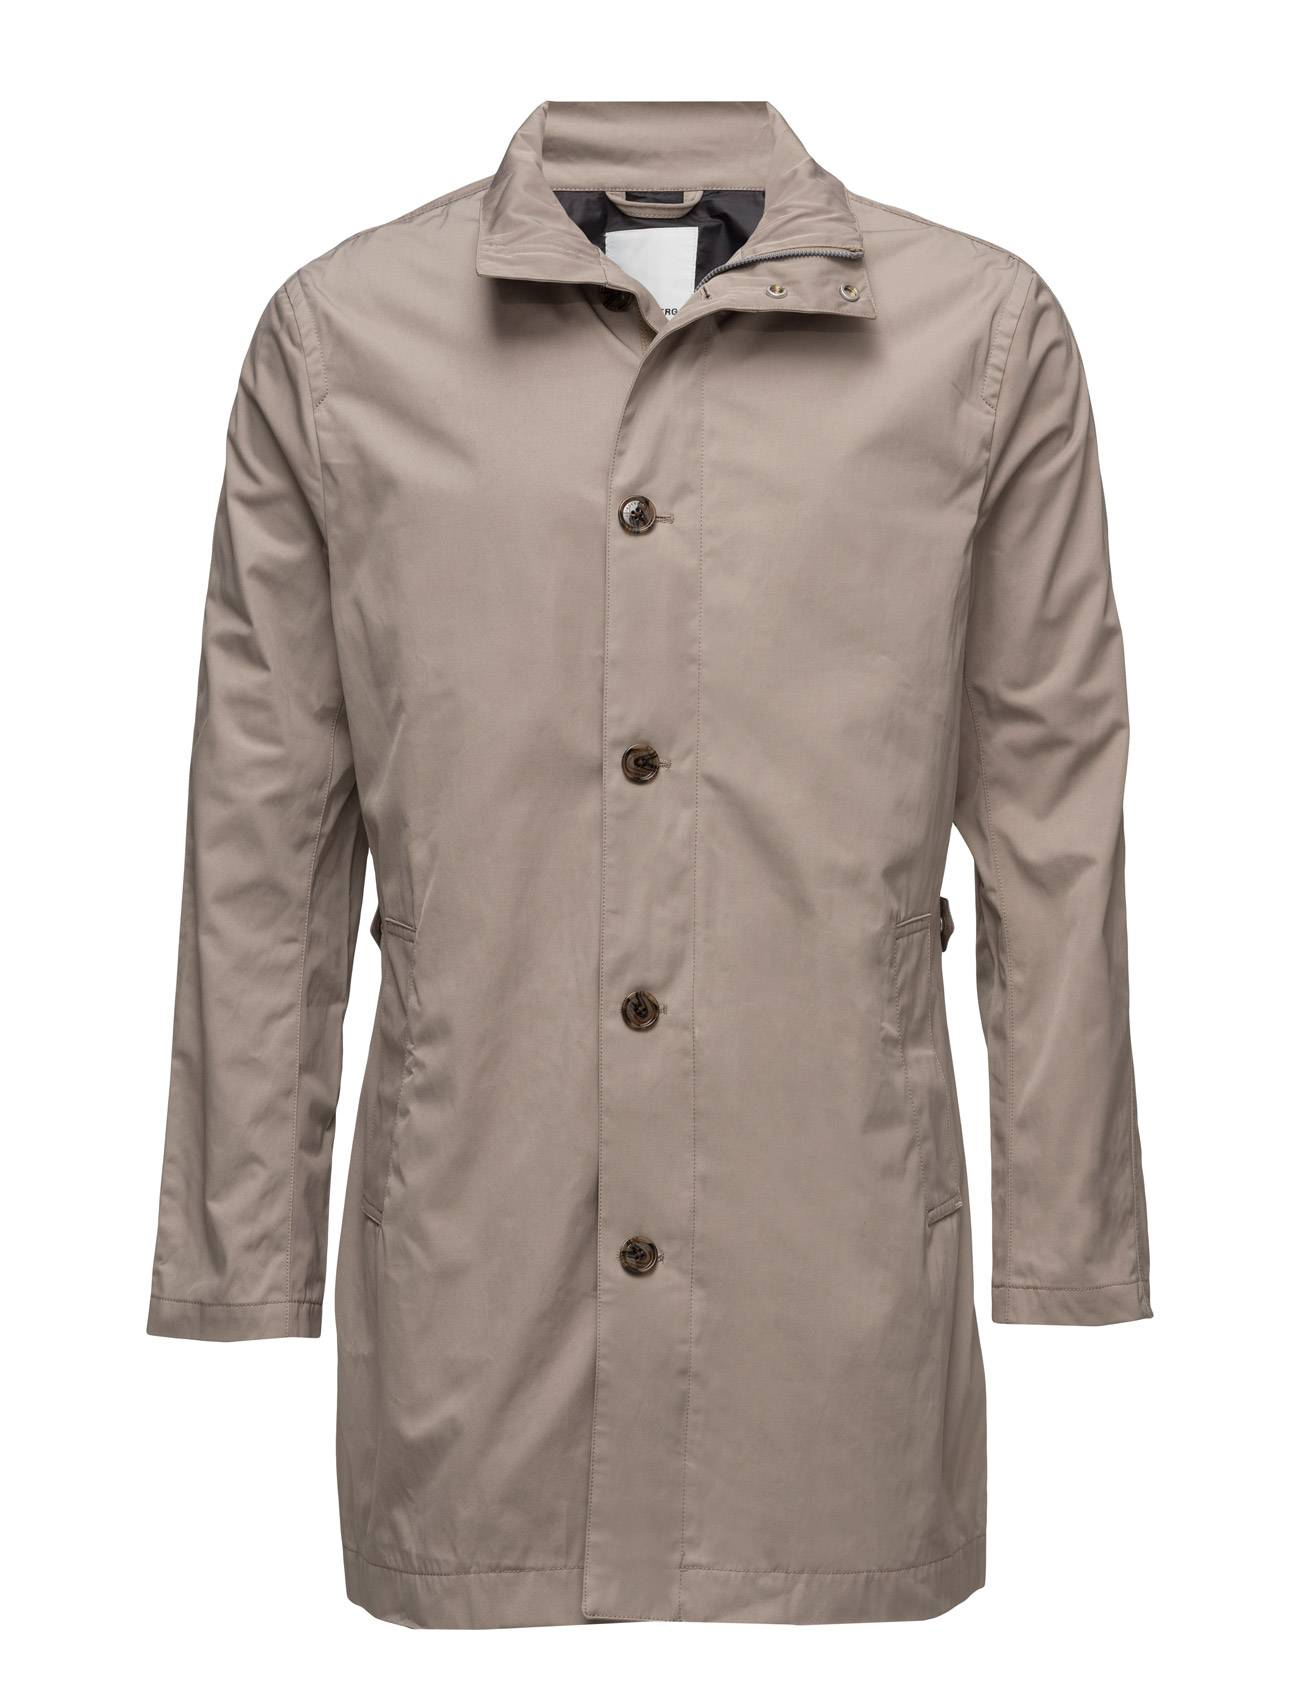 J. Lindeberg Terry 71 Wr Twill